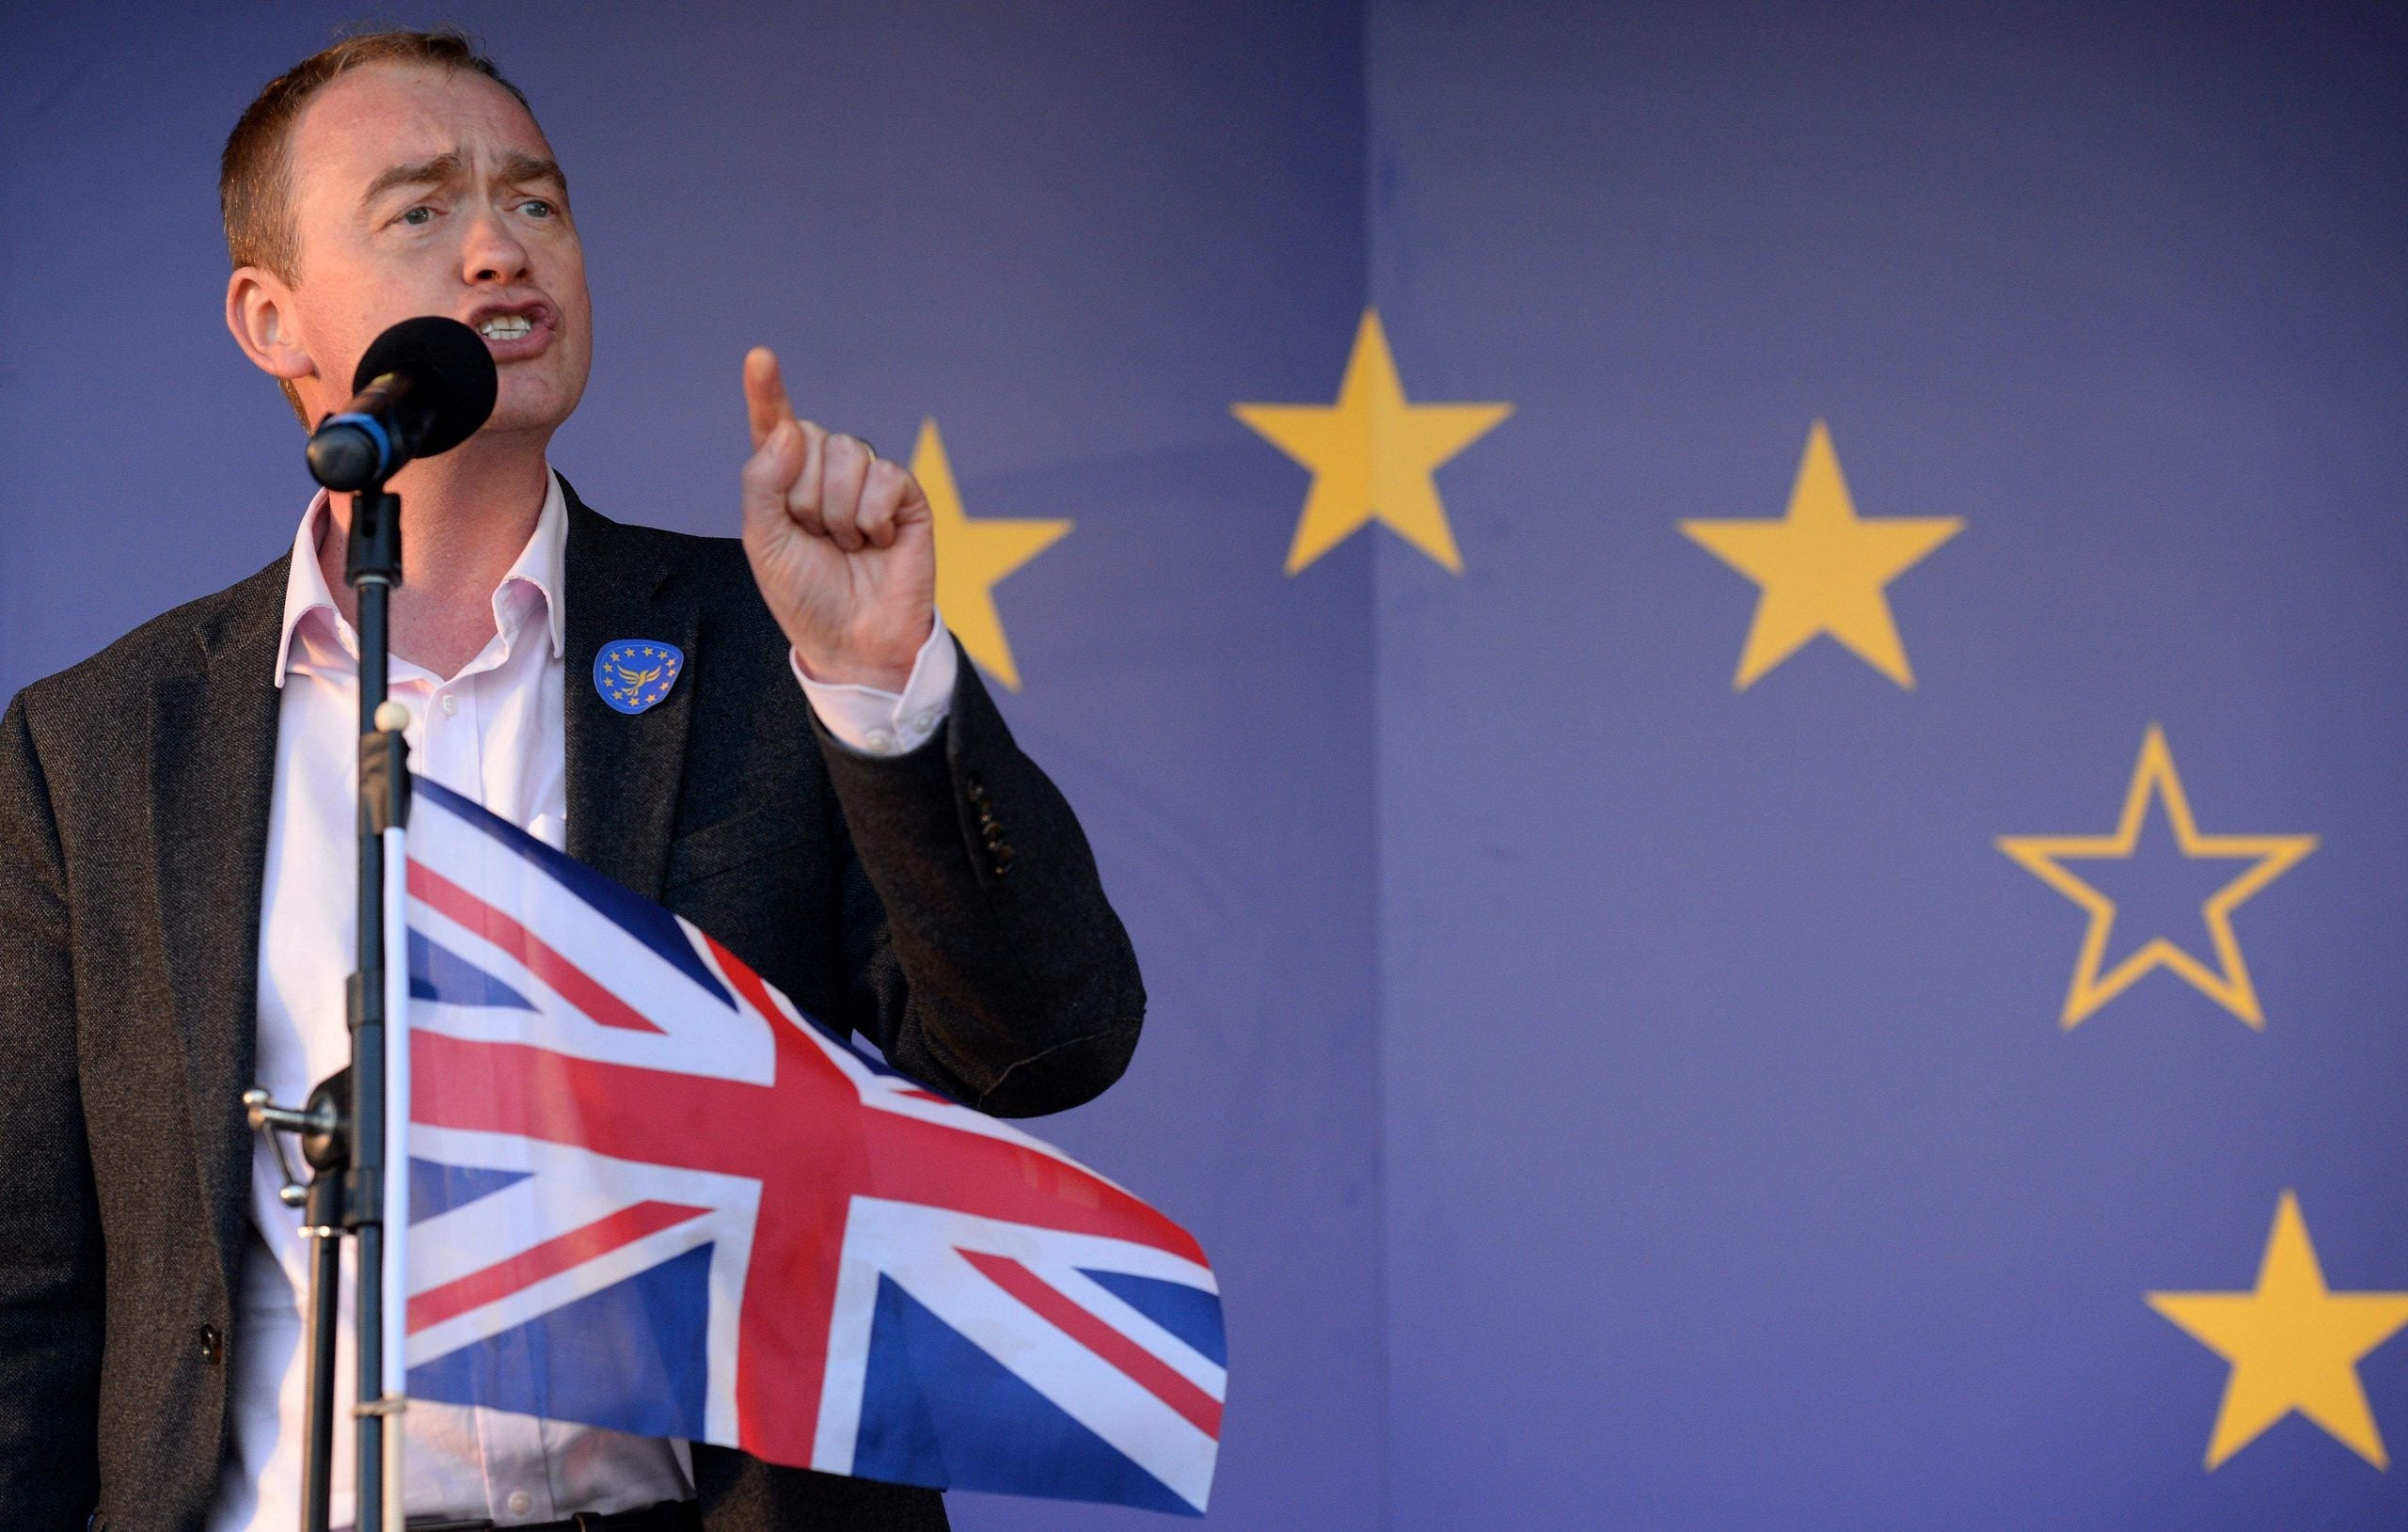 Tim Farron: Brexit and Conservative rule are not inevitable